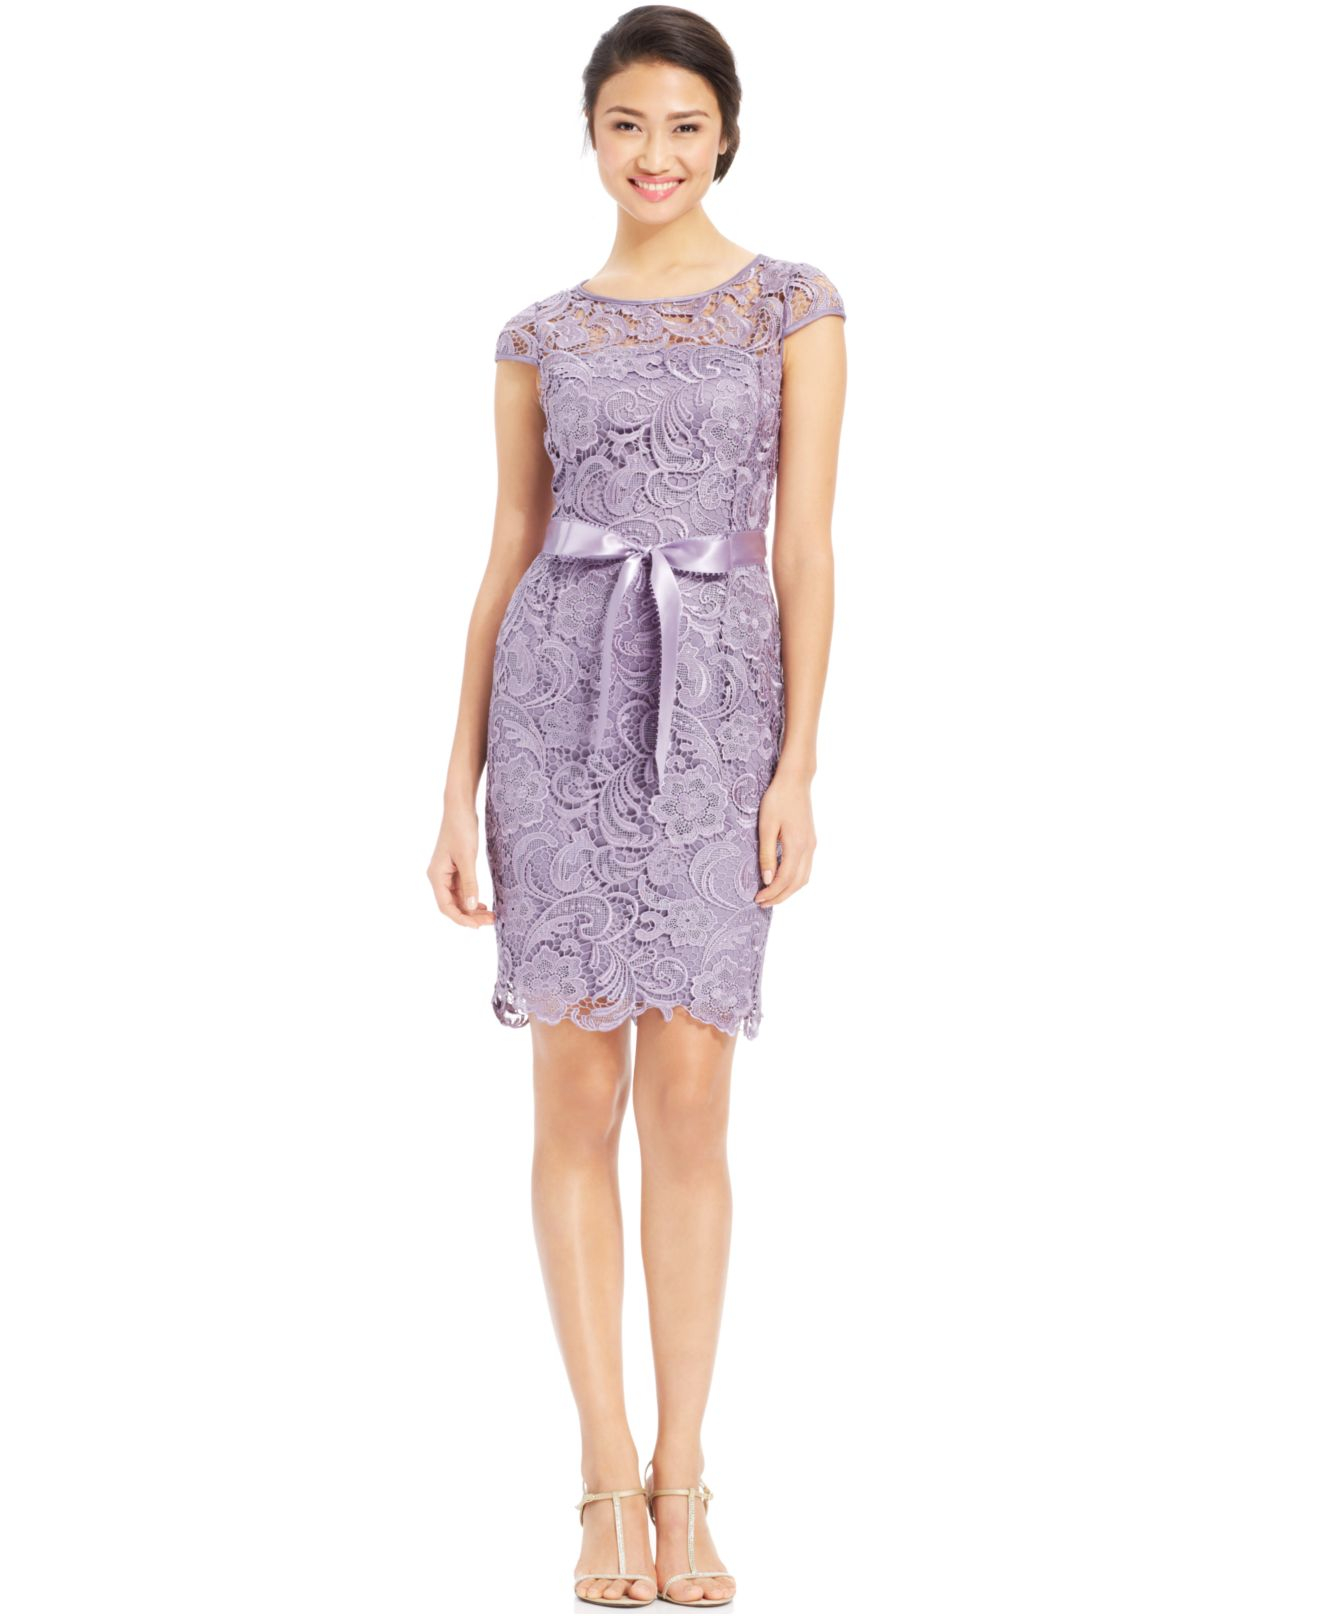 Lyst - Adrianna Papell Cap-Sleeve Illusion Lace Sheath in Purple